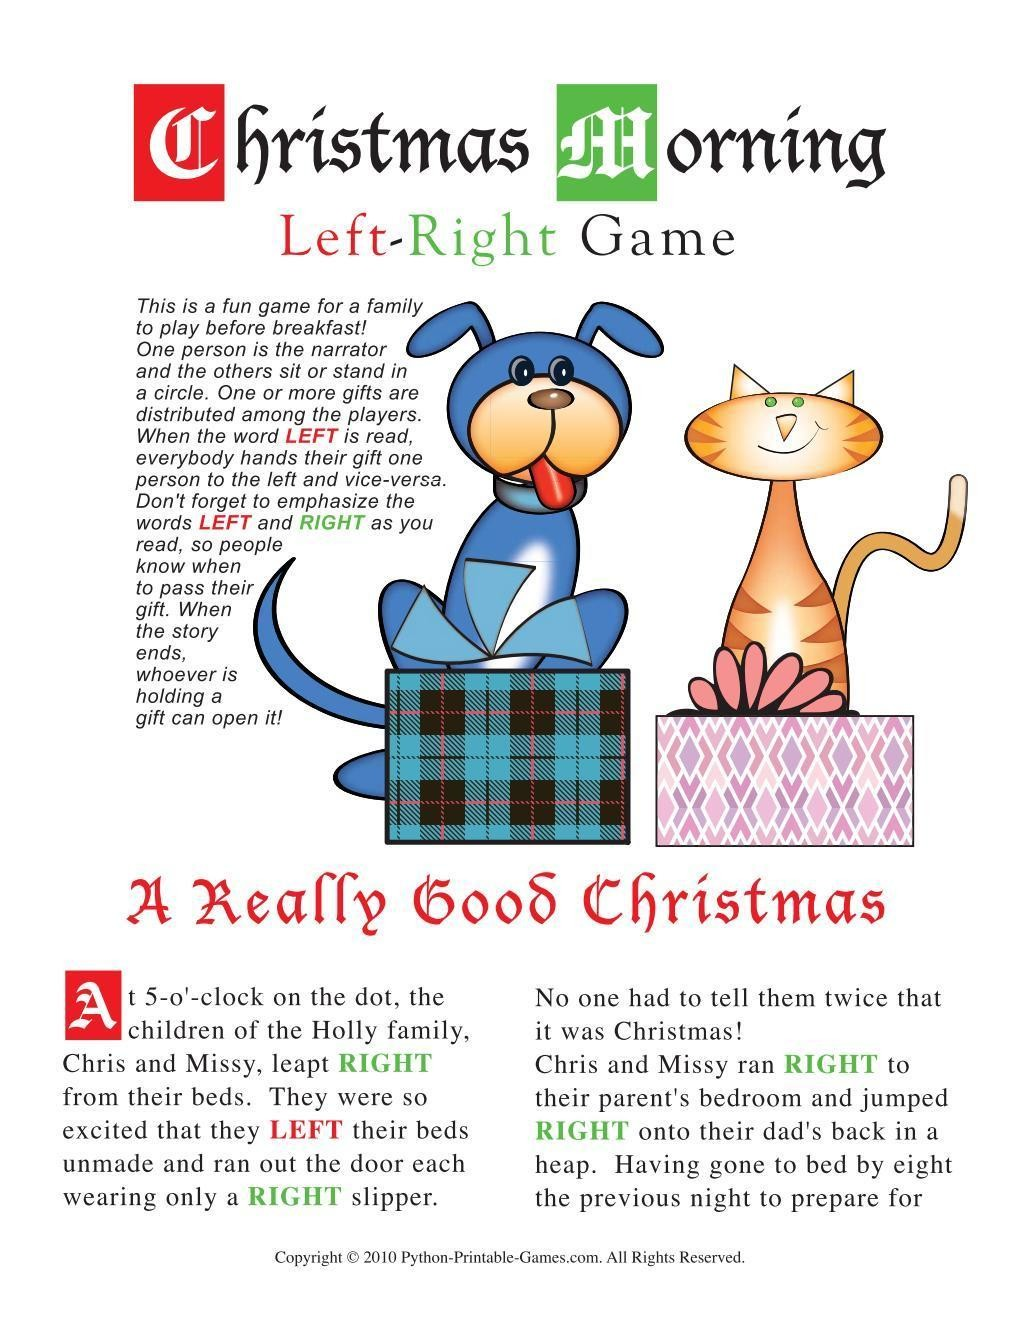 photograph relating to Left Right Games Printable known as Xmas: Xmas Early morning Remaining-Directly Match